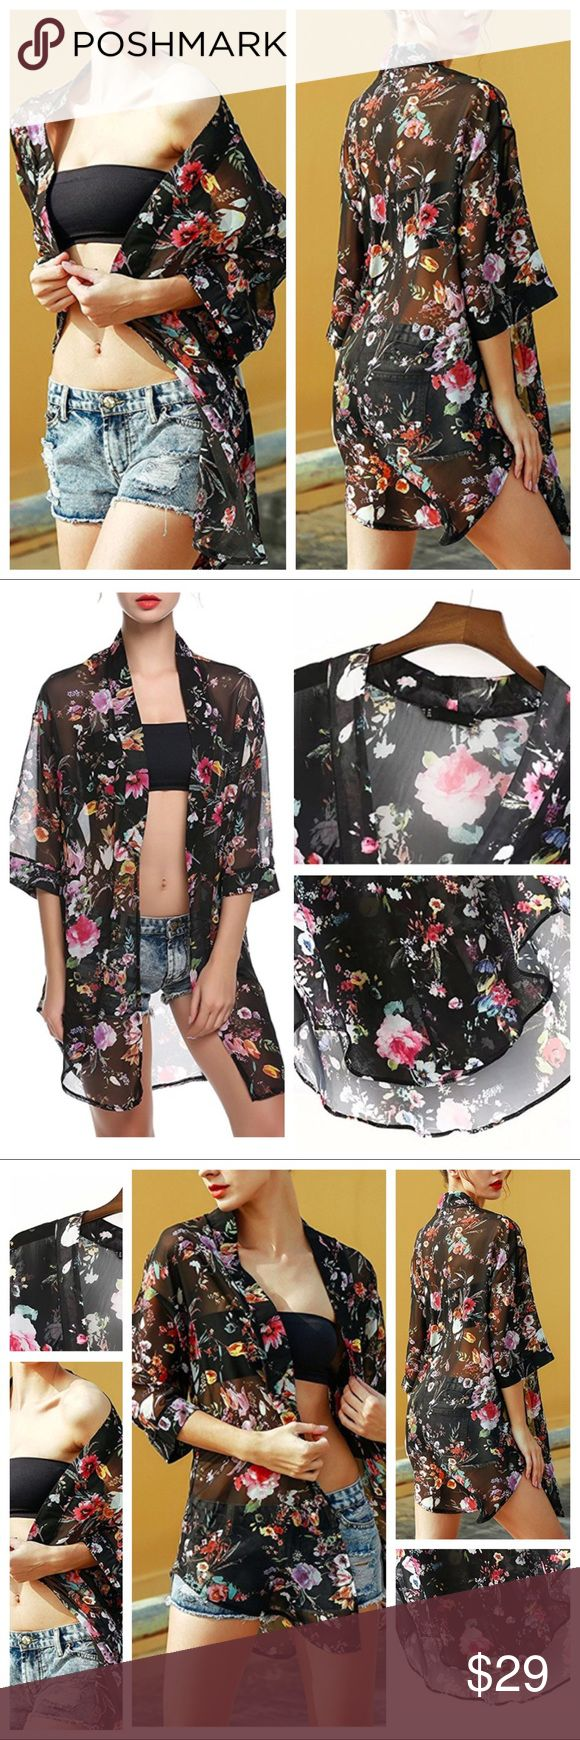 """Floral Print Chiffon Long Kimono Floral Print Chiffon Long Kimono Top   One Size Fits Most (Up to 16-see measurements).  Multicolor:  Black with Red, Yellow, Purple, Red, Navy, White, etc.   Chiffon / Cotton Blend / Polyester Half Sleeve, Long Cardigan Top/Blouse  Hand-wash or Machine-wash on Gentle. Measurements:  Shoulder----22.2"""";  Sleeve----12.7""""; Bust----46"""";  Max Length----35"""".   Code 04091709. Swim Coverups"""